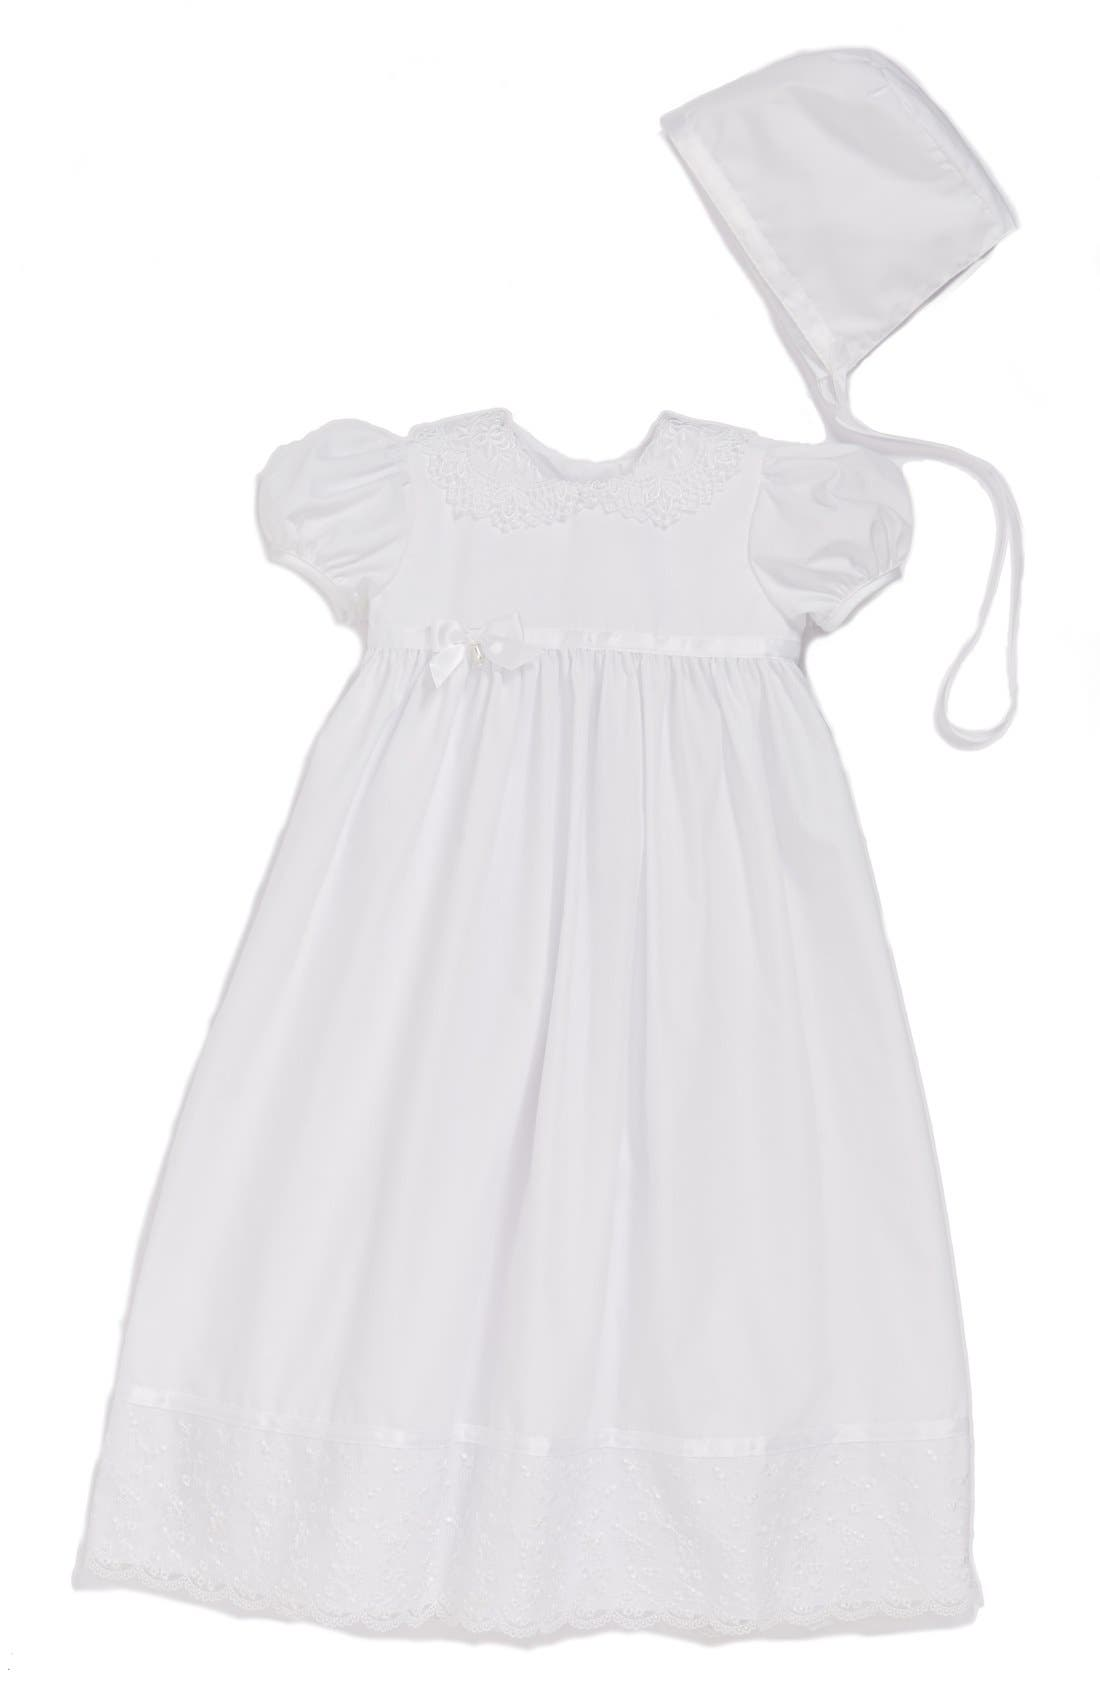 Little Things Mean a Lot Lace Collar Christening Gown and Bonnet Set (Baby Girls)